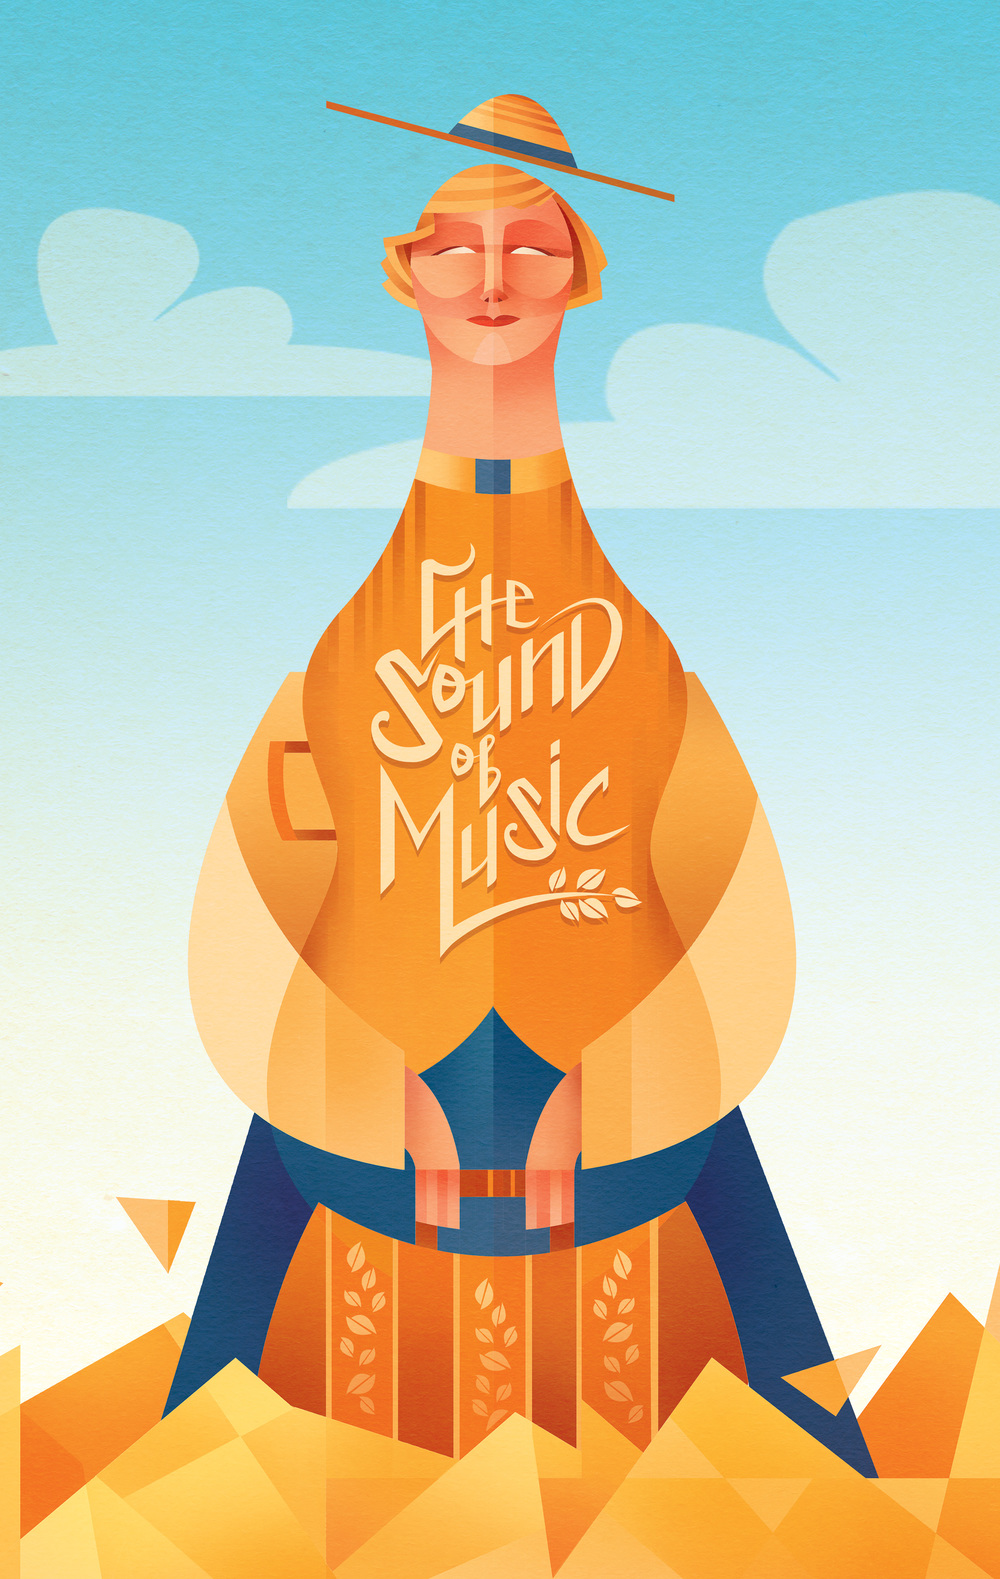 SoundofMusic-Behance.jpg